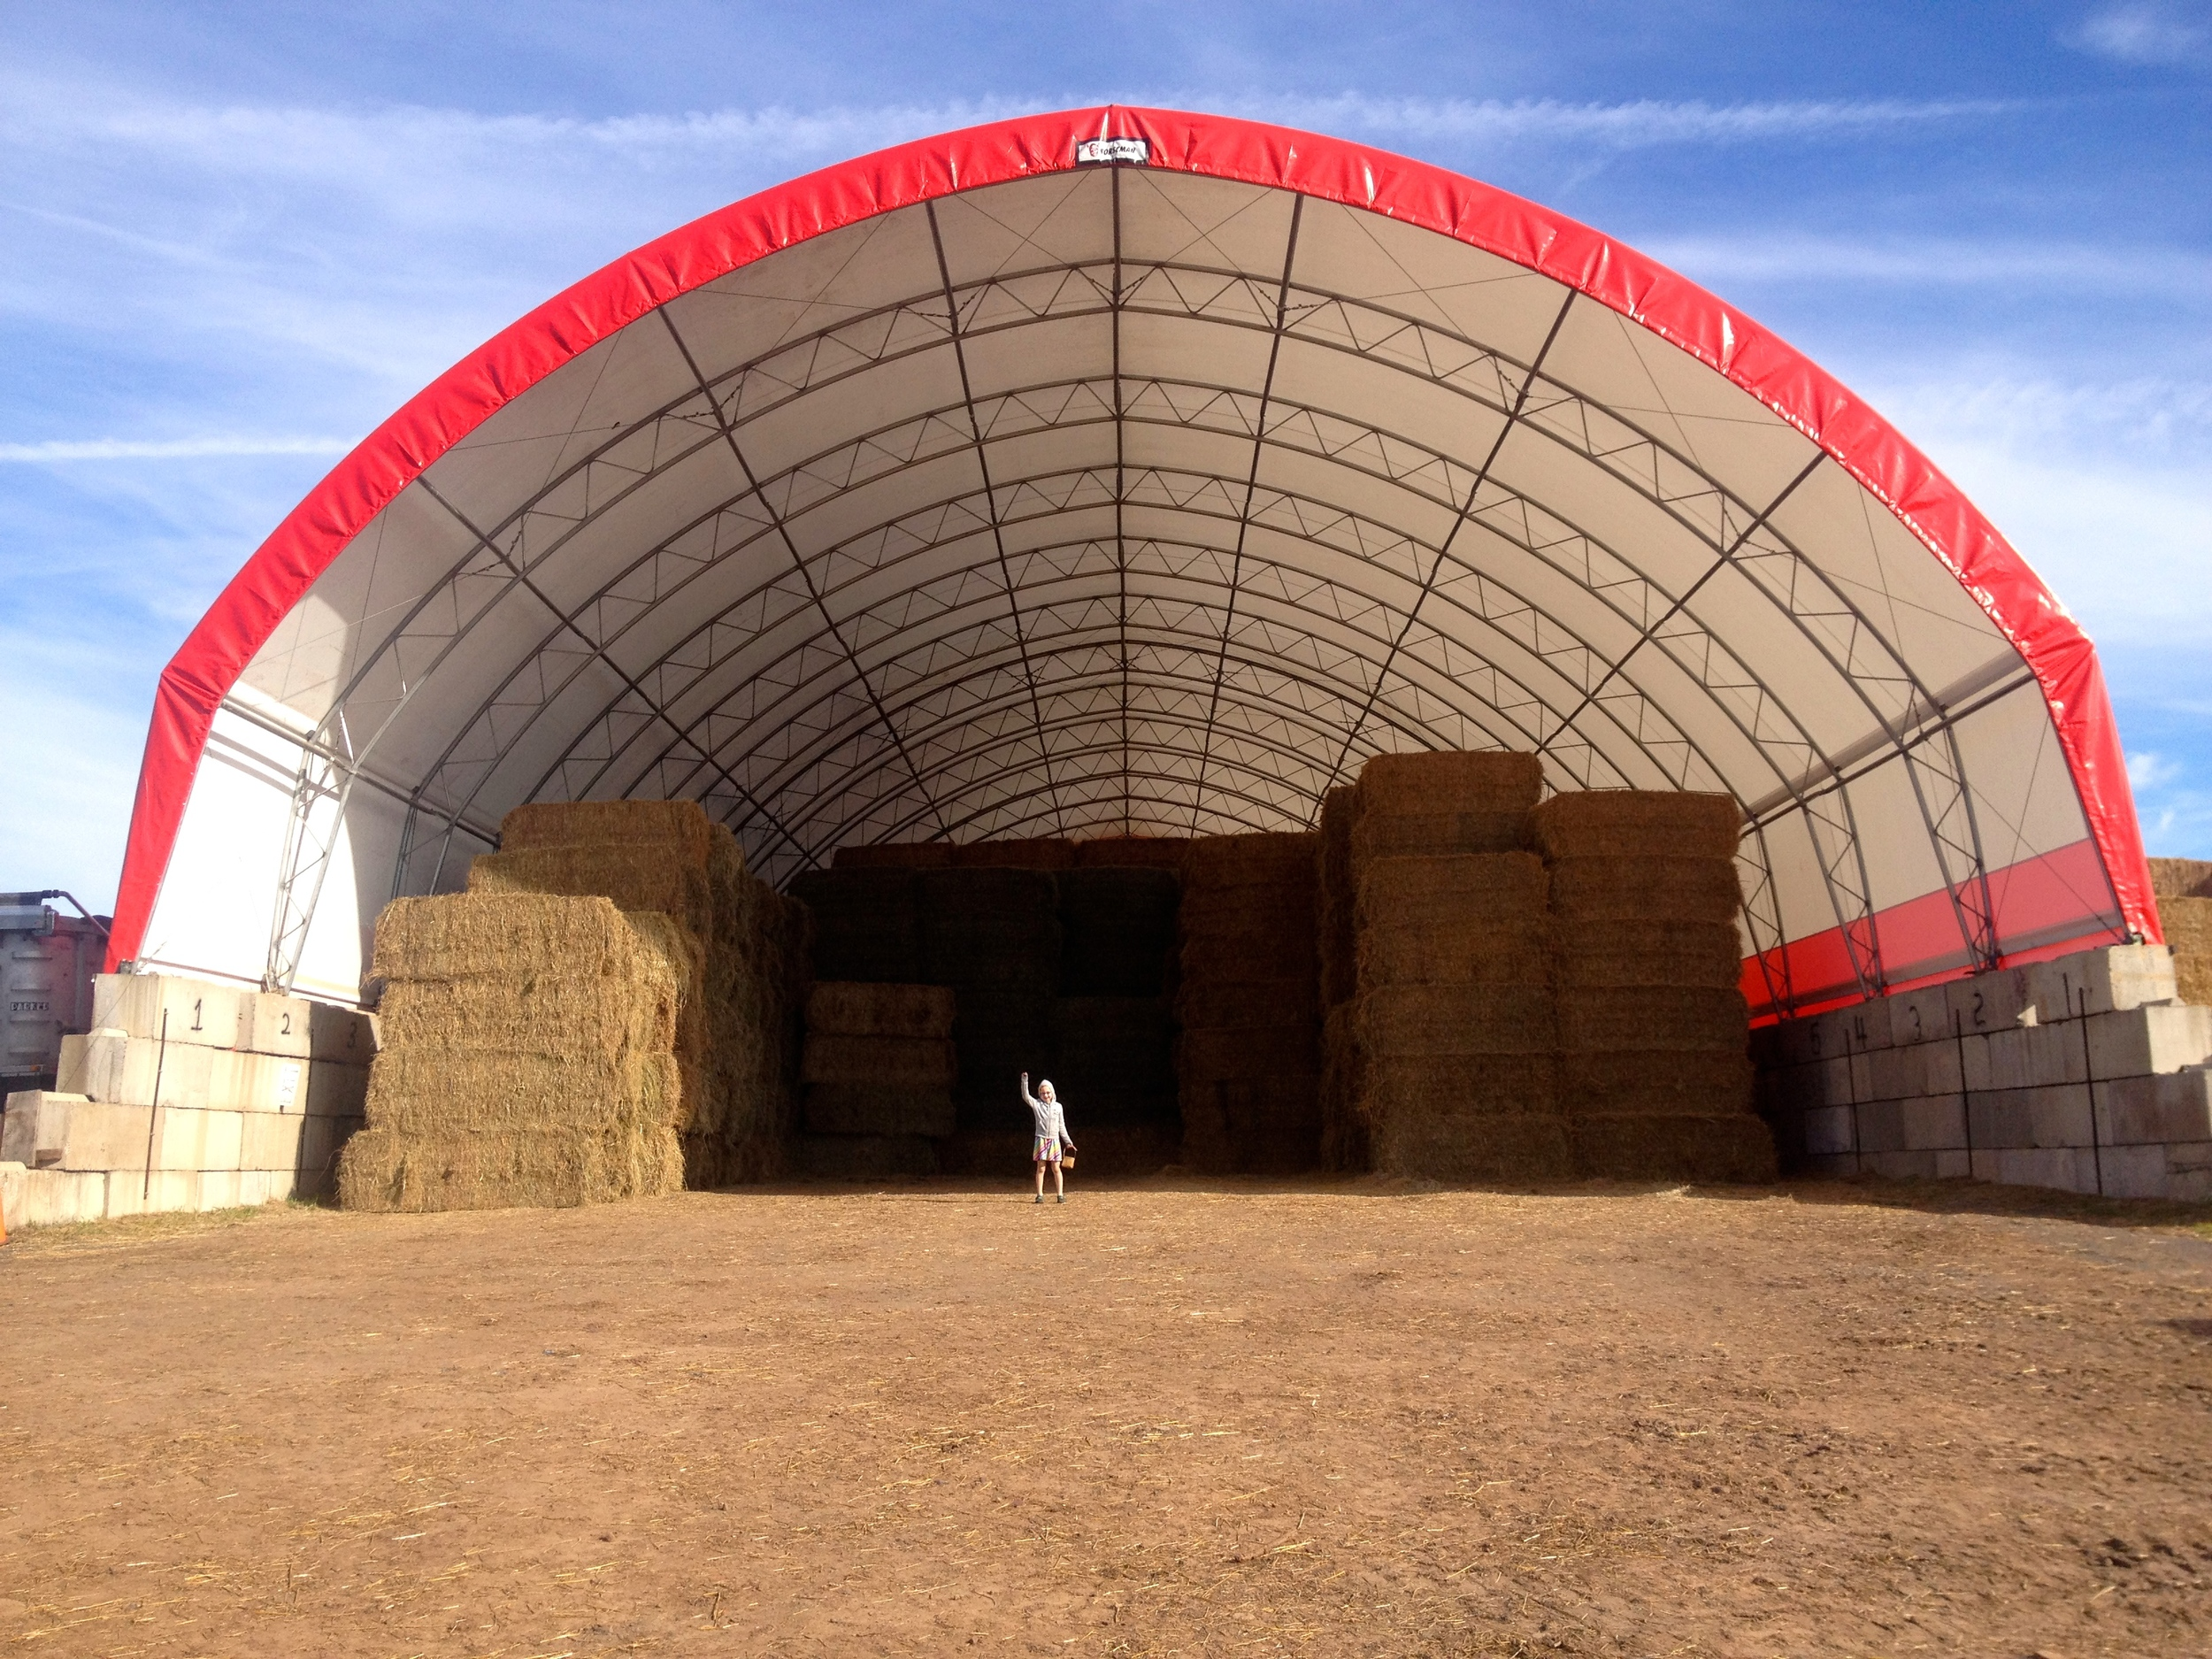 Here is ONE of the hay stacks... that wee little figure in the middle is Nori.